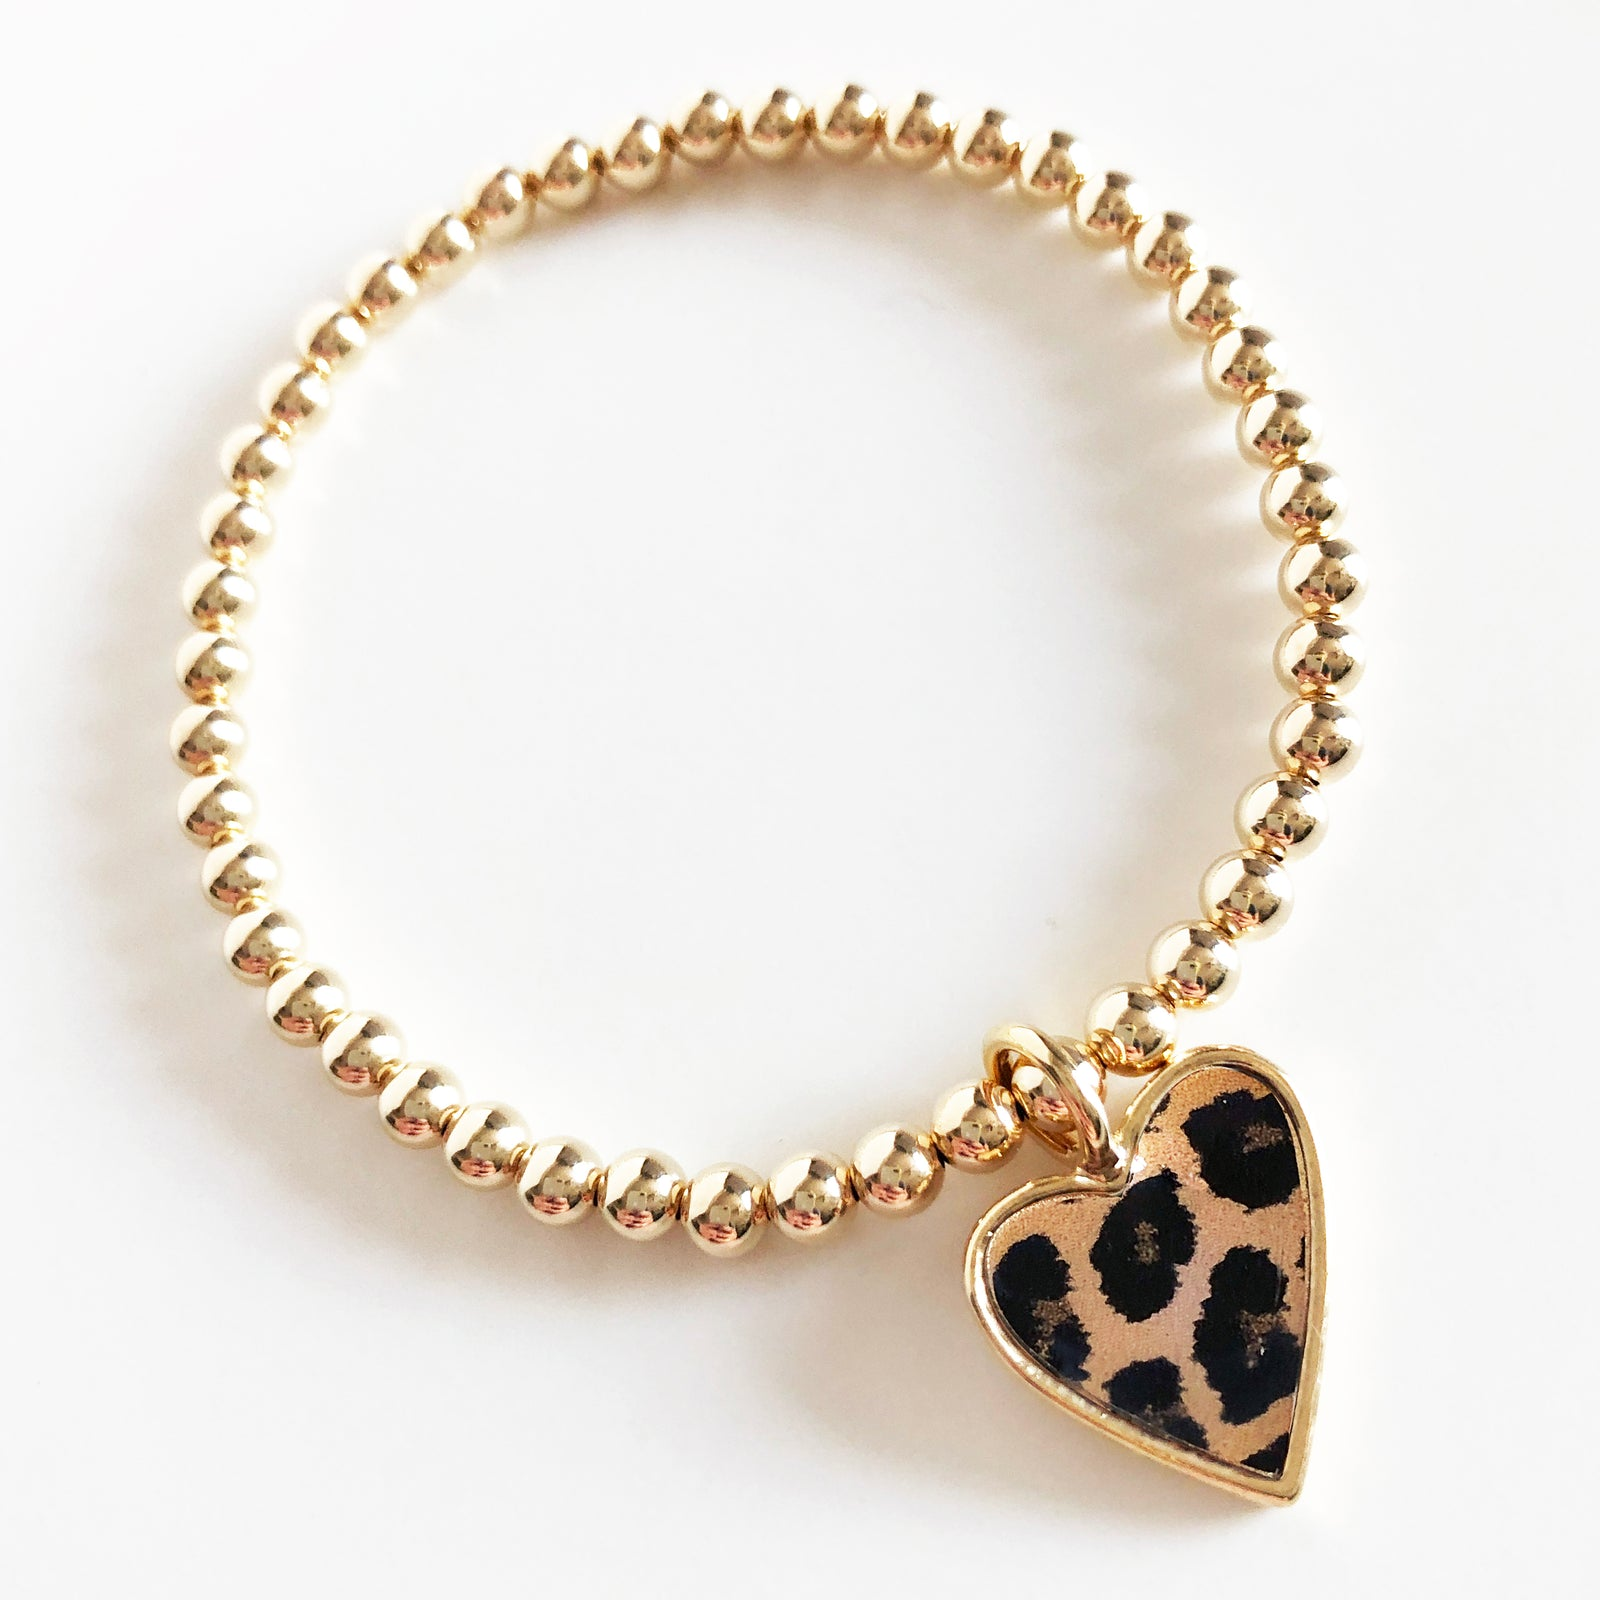 4mm gold beaded bracelet with gold leopard print heart charm